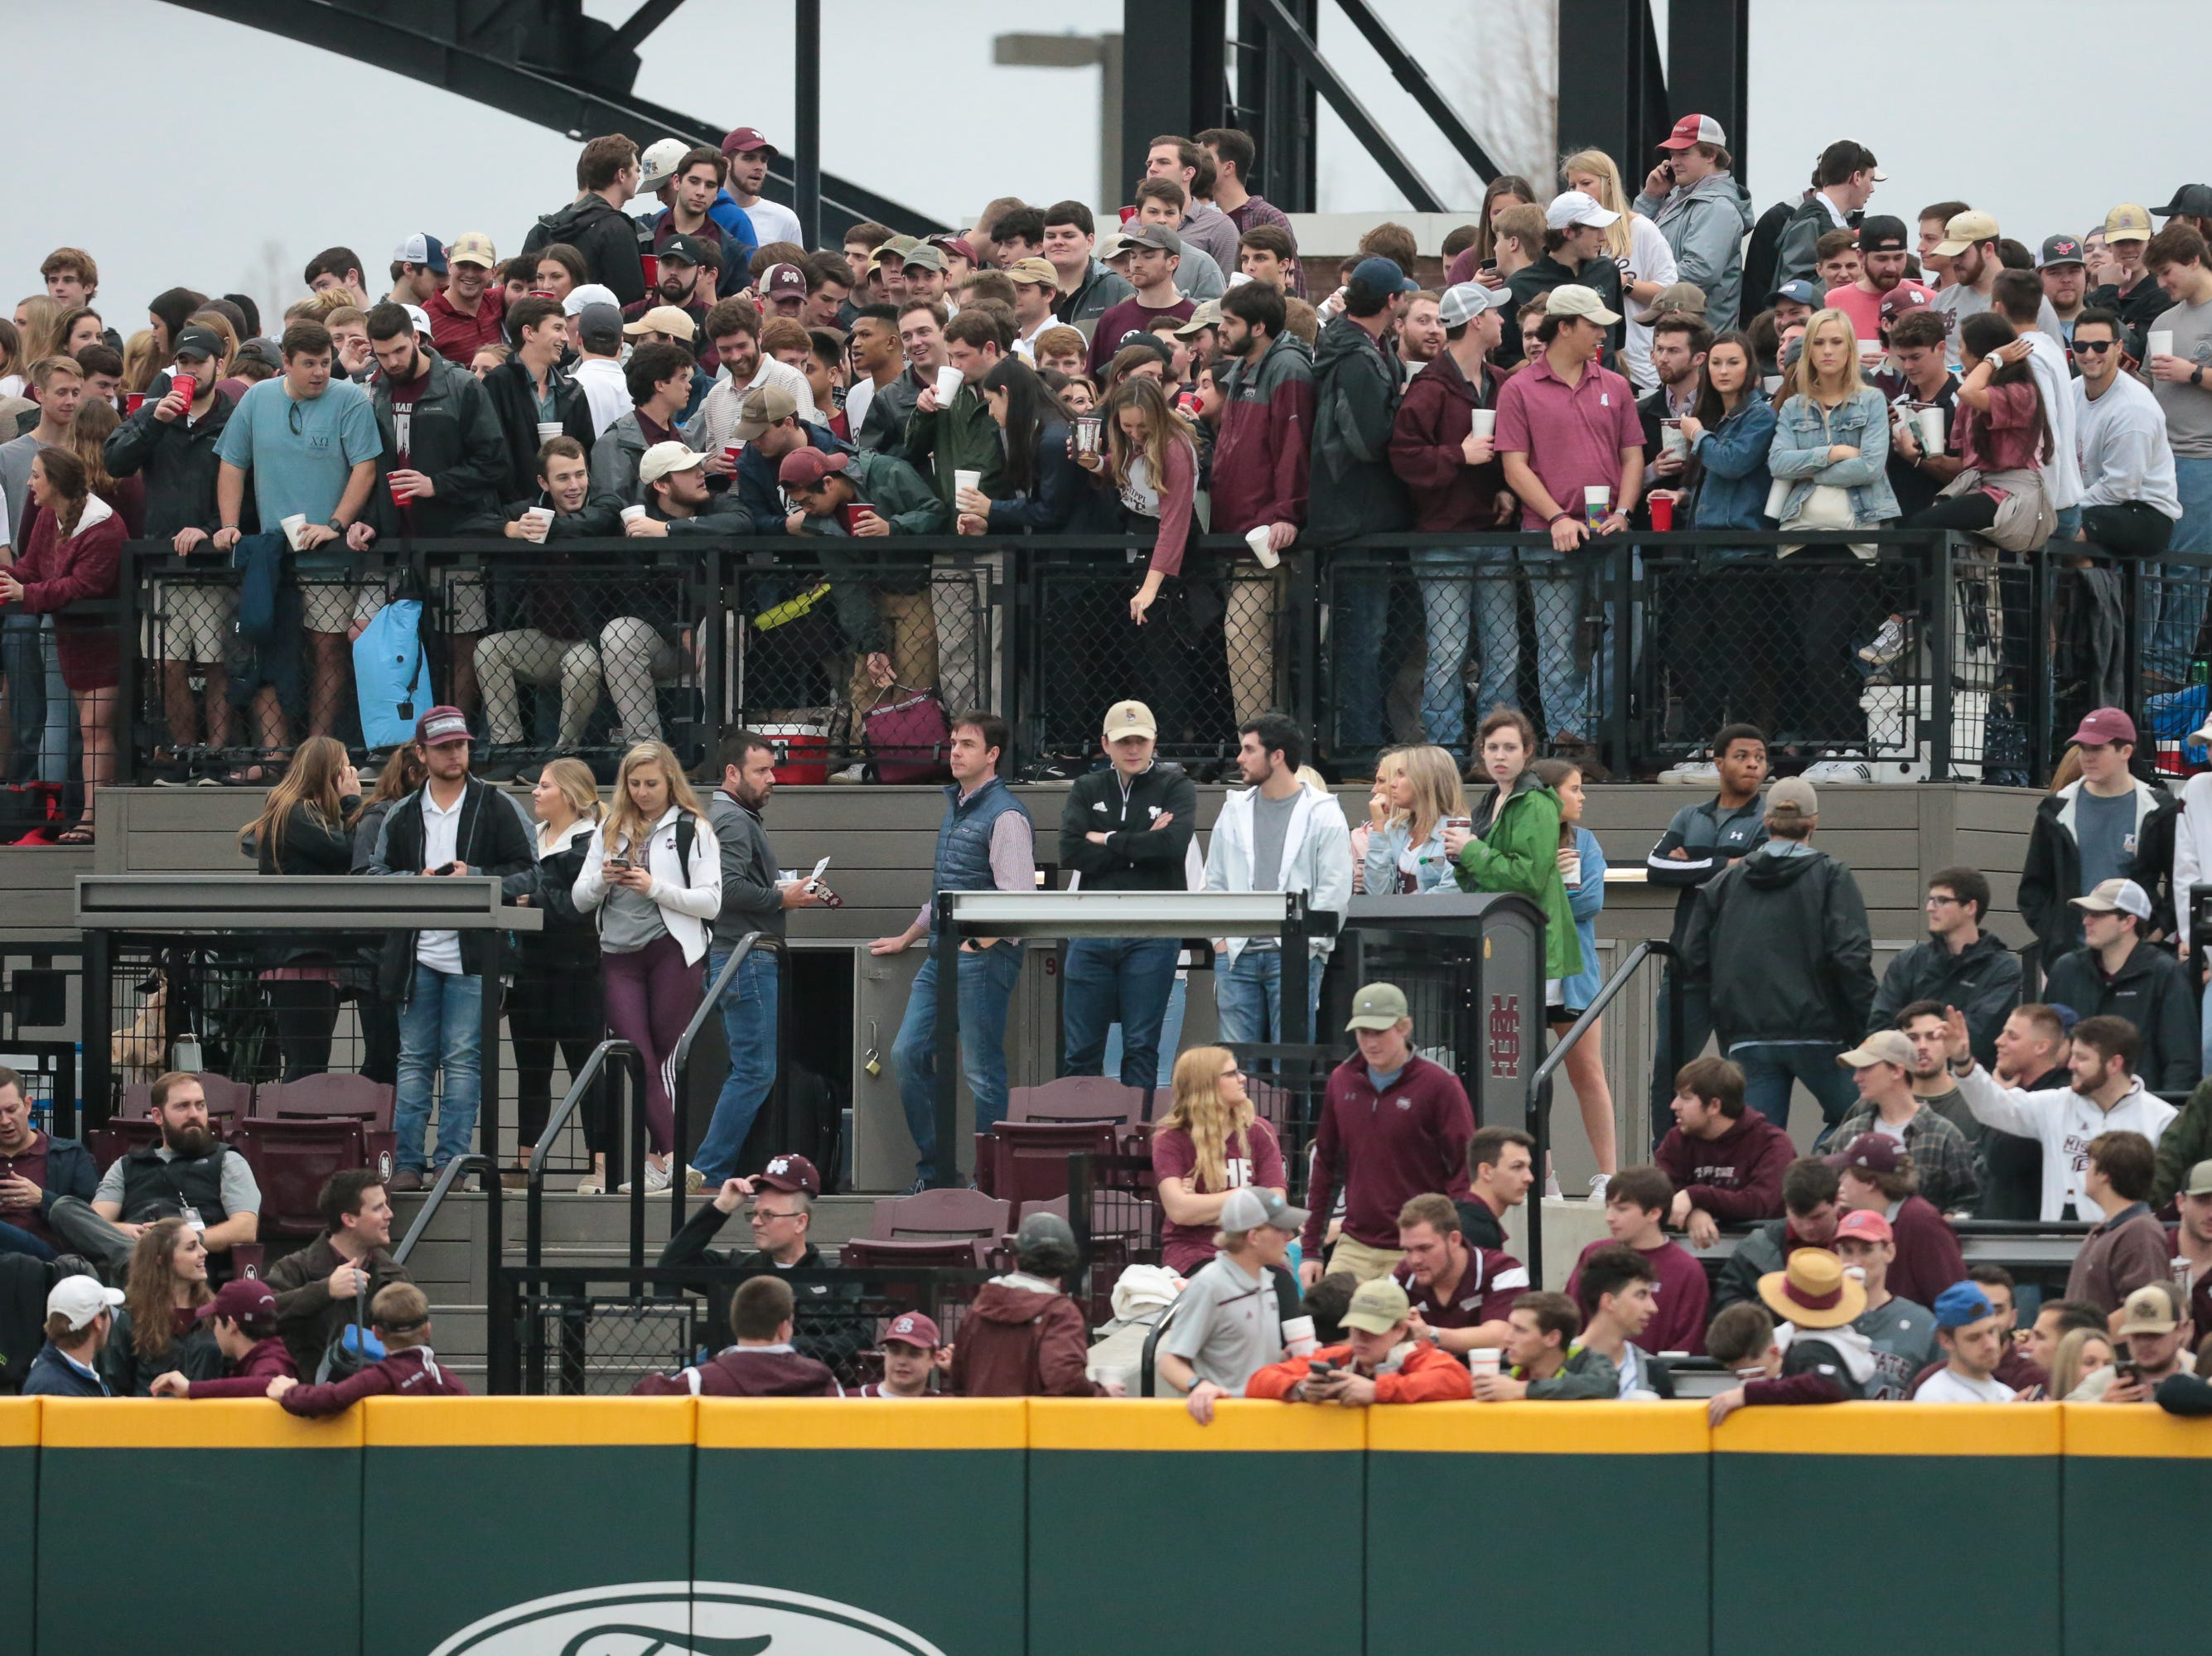 MSU fans watch from the outfield. Mississippi State opened the 2019 baseball season against Youngstown State on Friday, February 15, 2019. Photo by Keith Warren